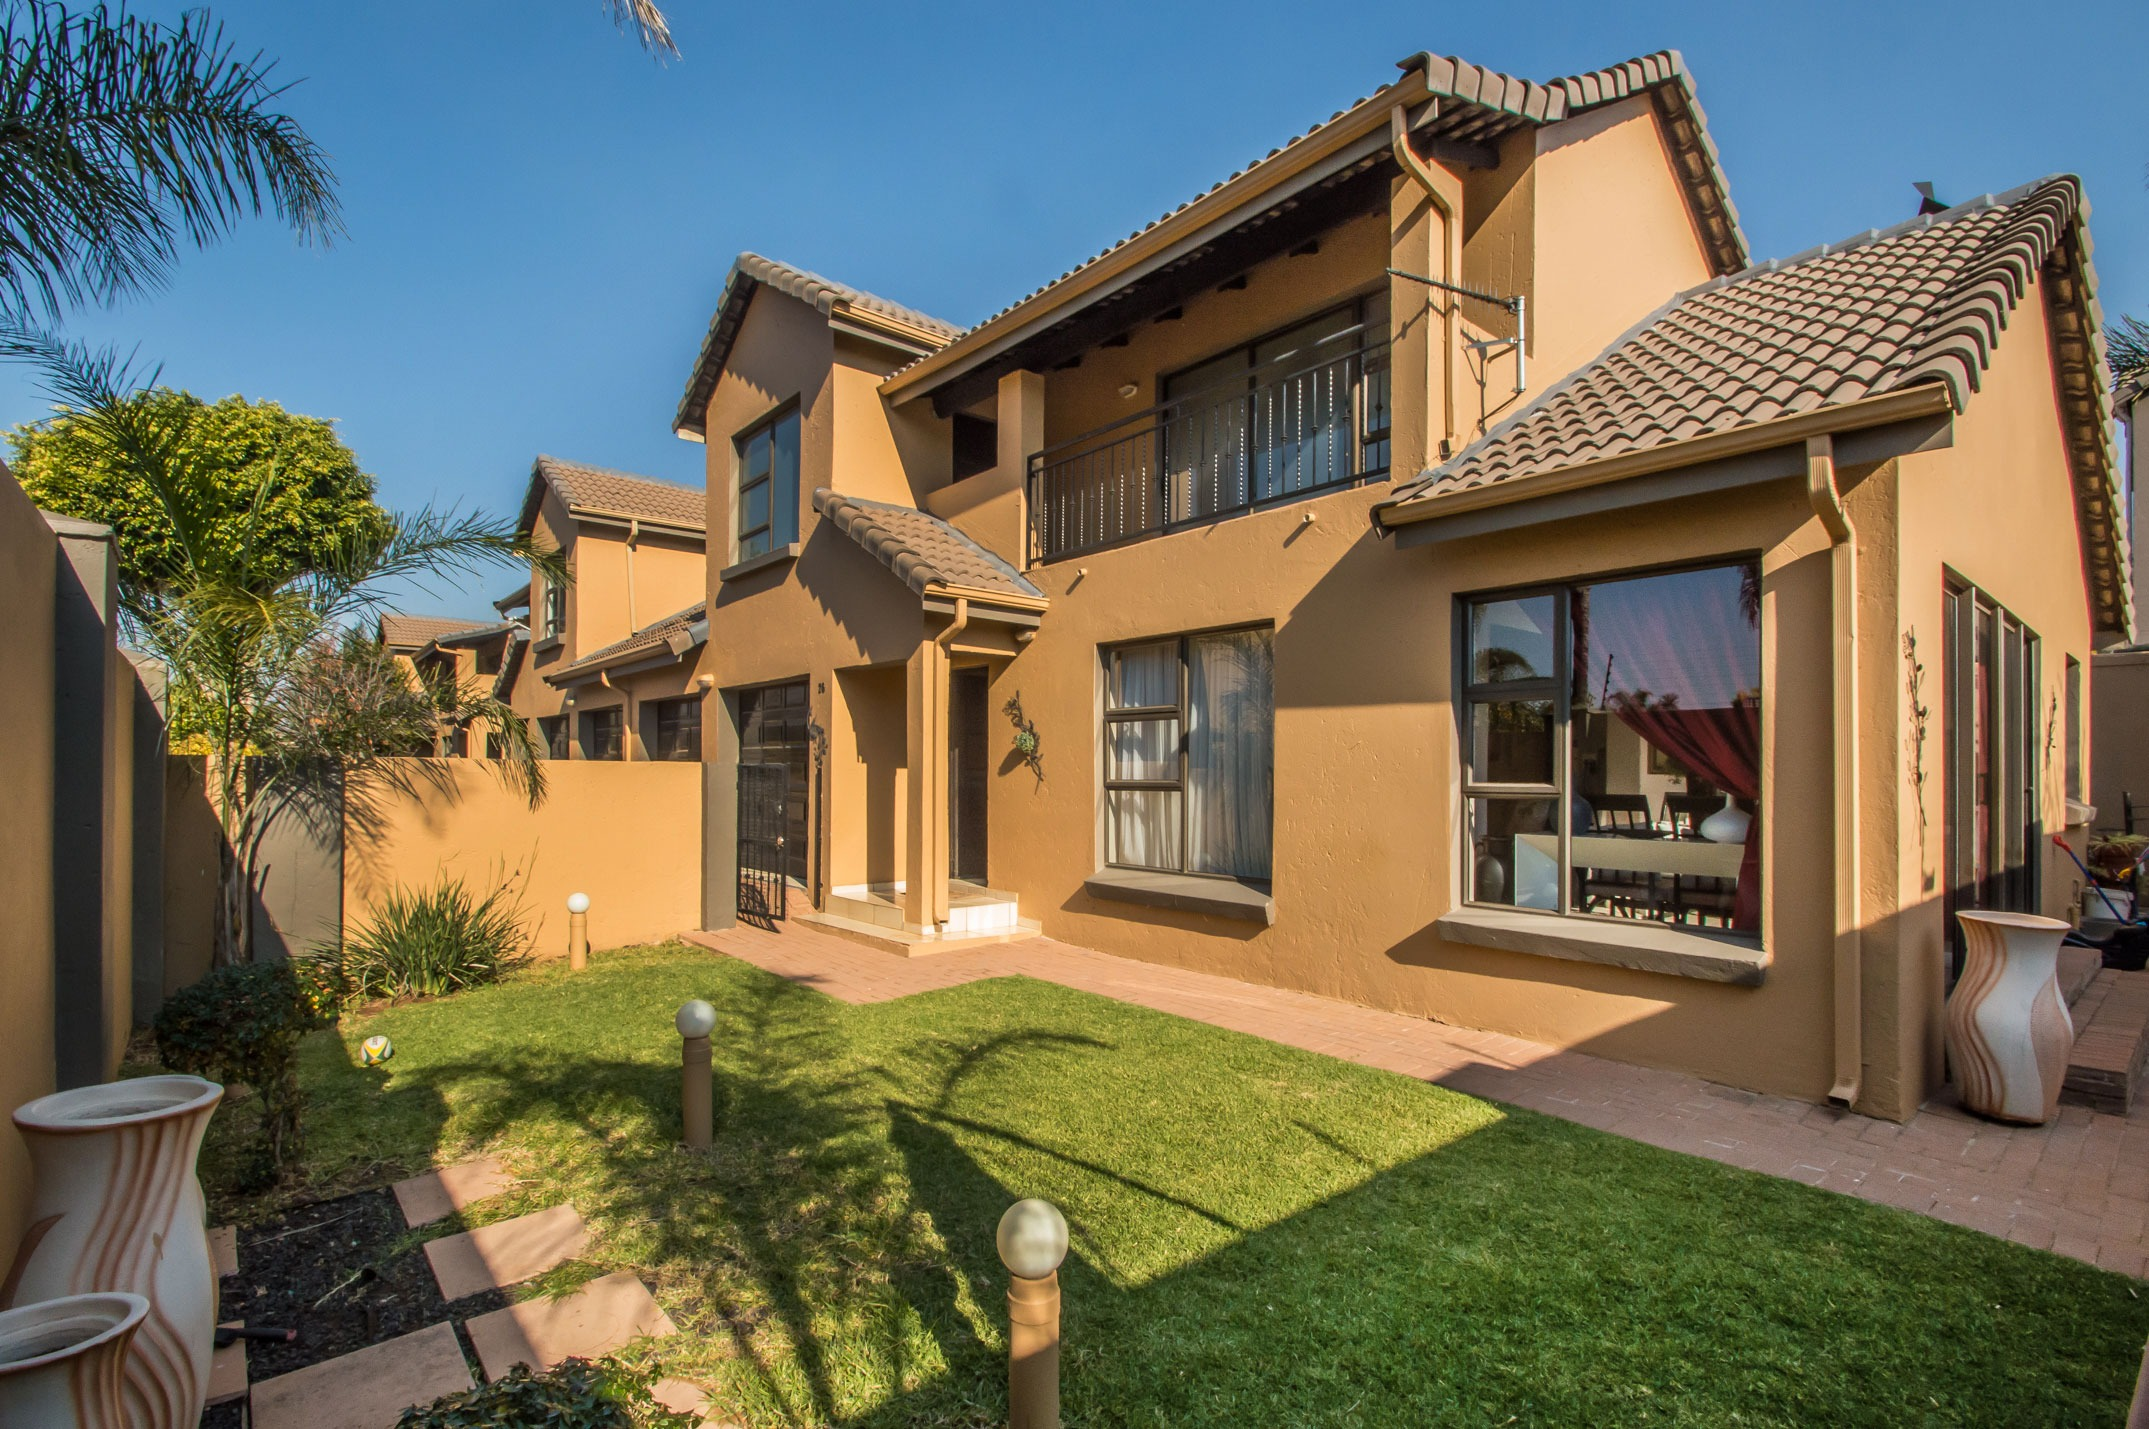 2 Bedroom Townhouse in Amorosa, Ruimsig